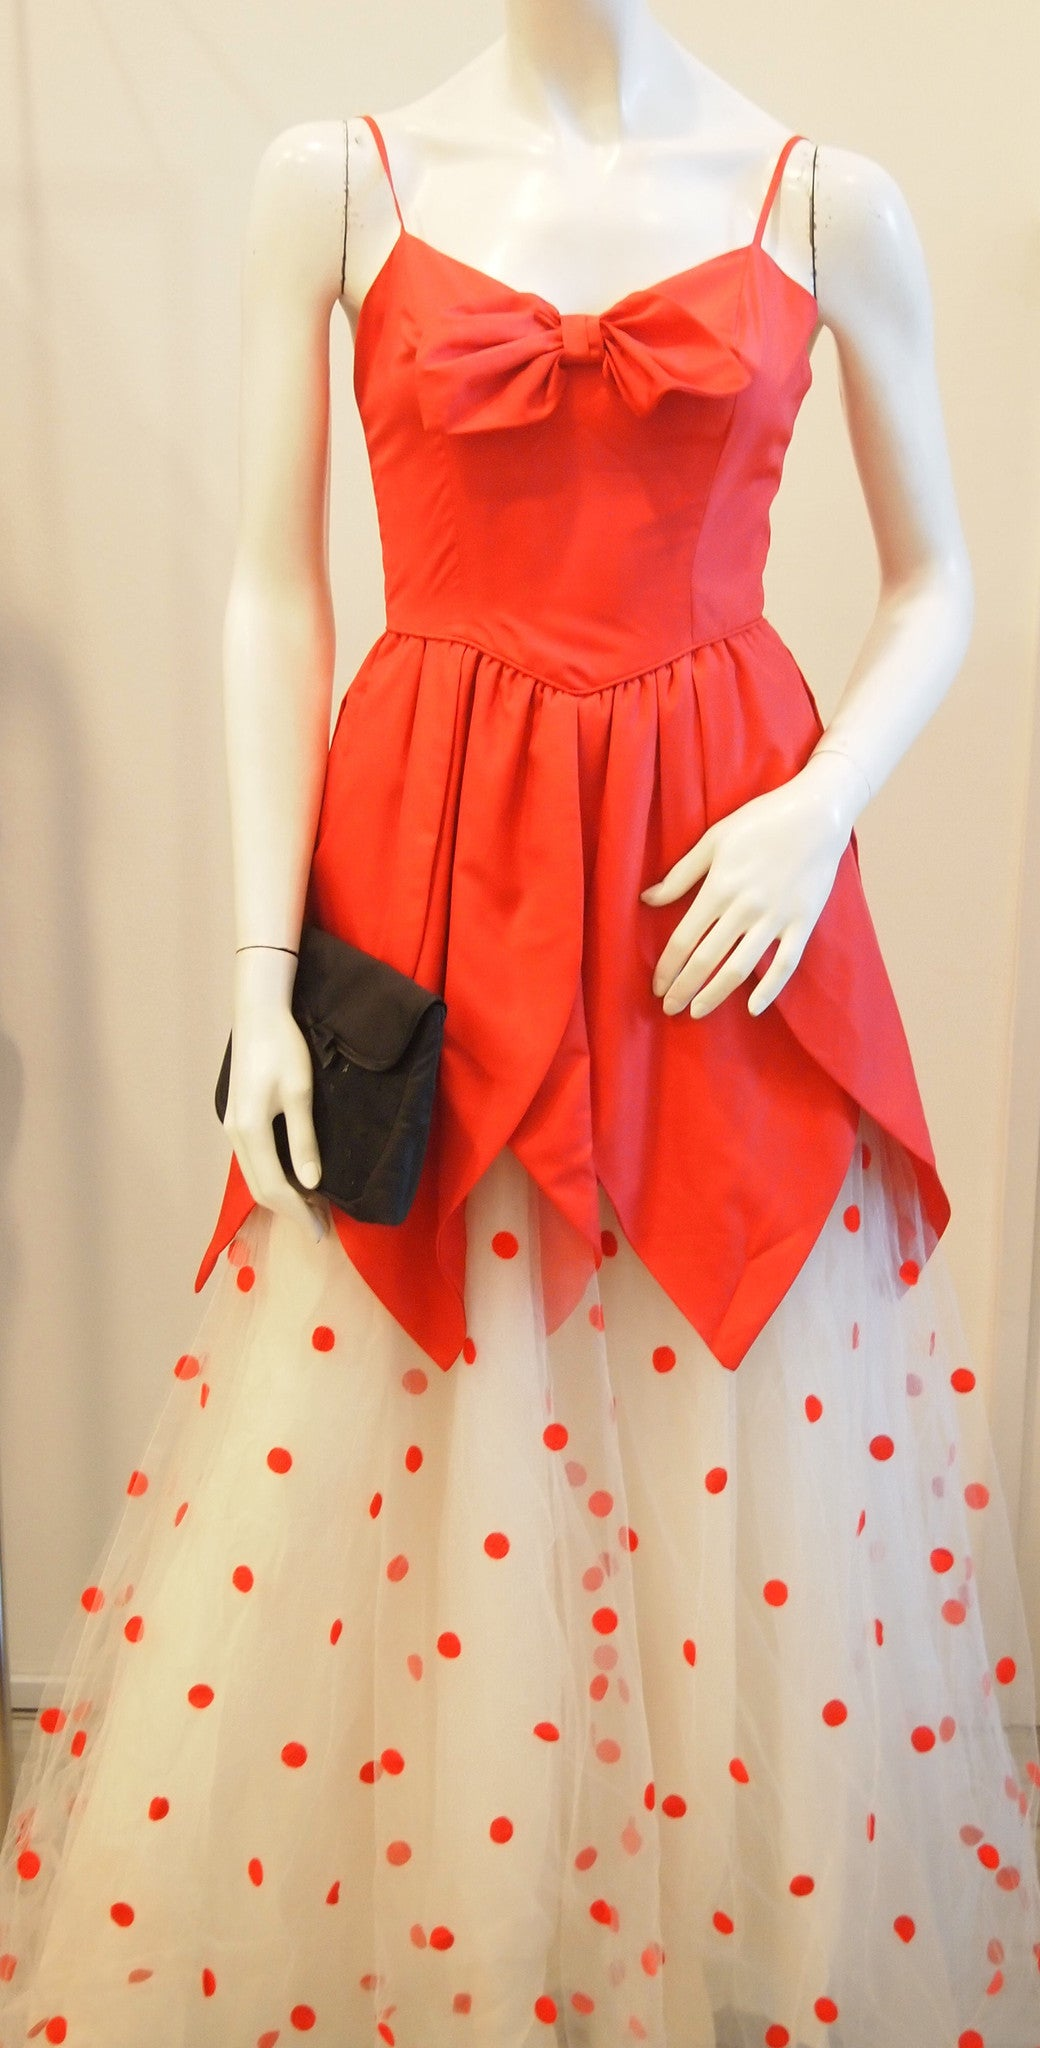 Red ribbon tulip edge and polka dot skirt